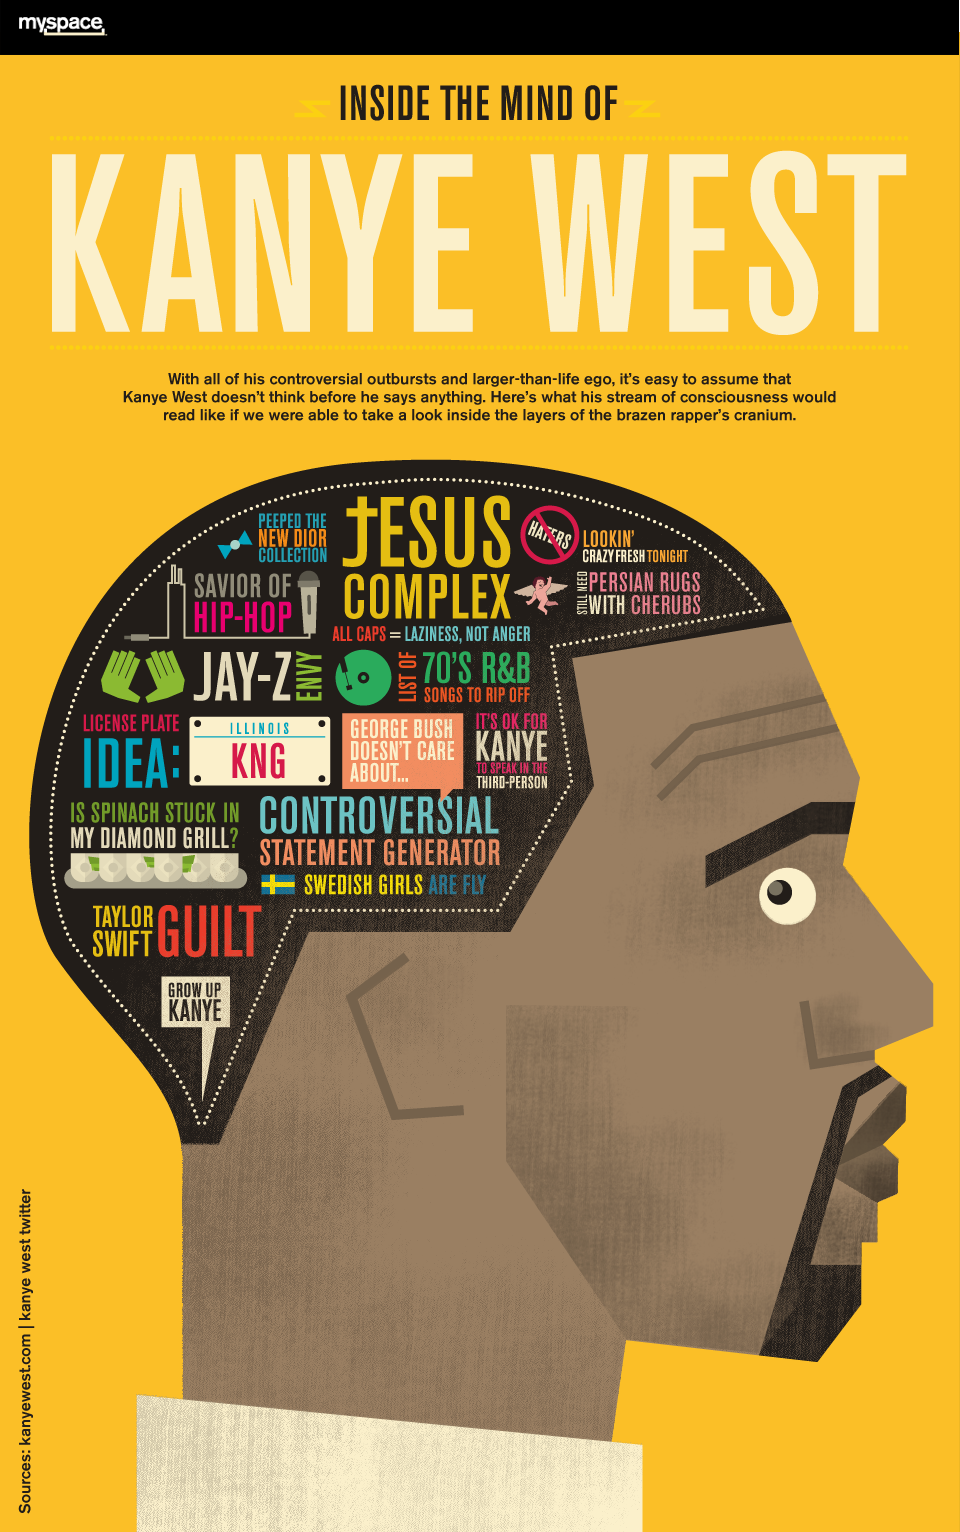 inside-the-mind-of-kanye-west-infographic.png